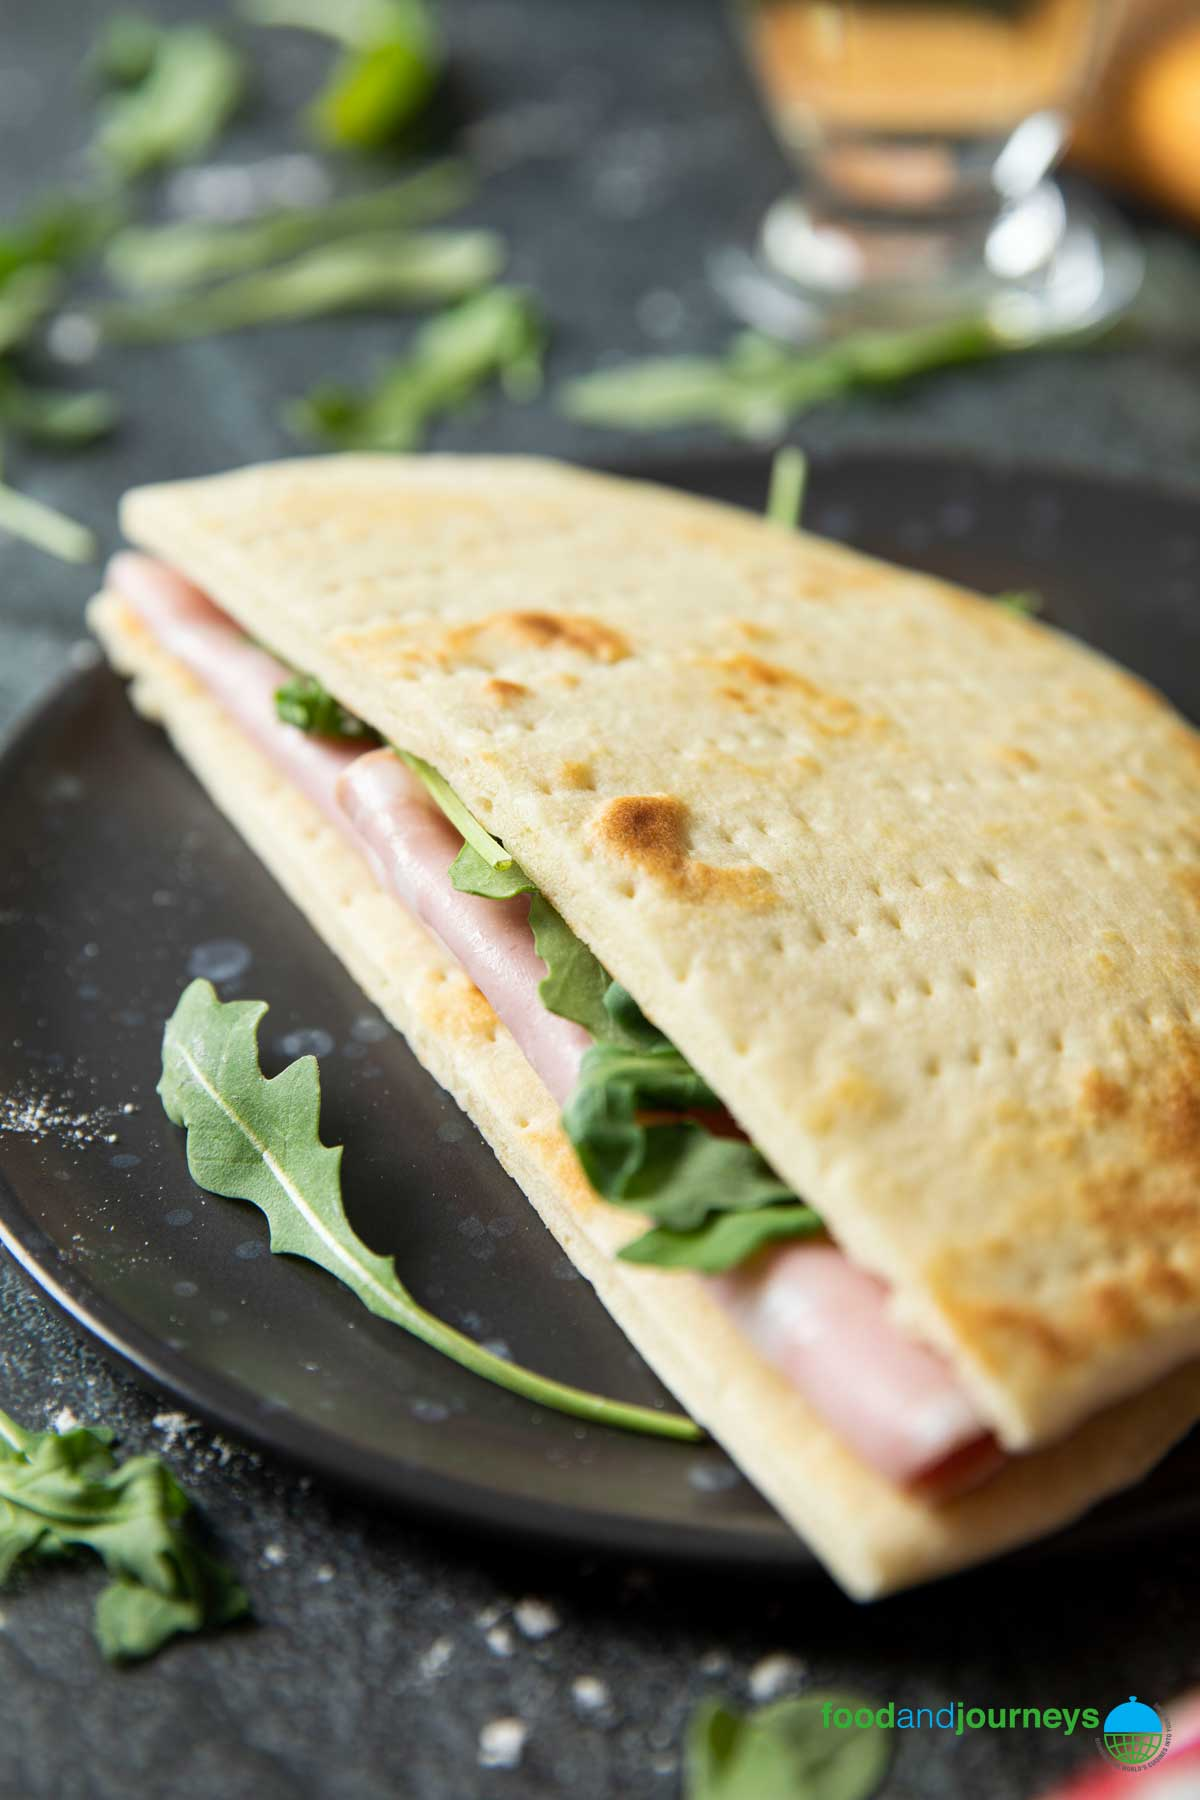 A closer shot of a sandwich made of flatbread cut into halves, with slices of mortadella and some rucola.